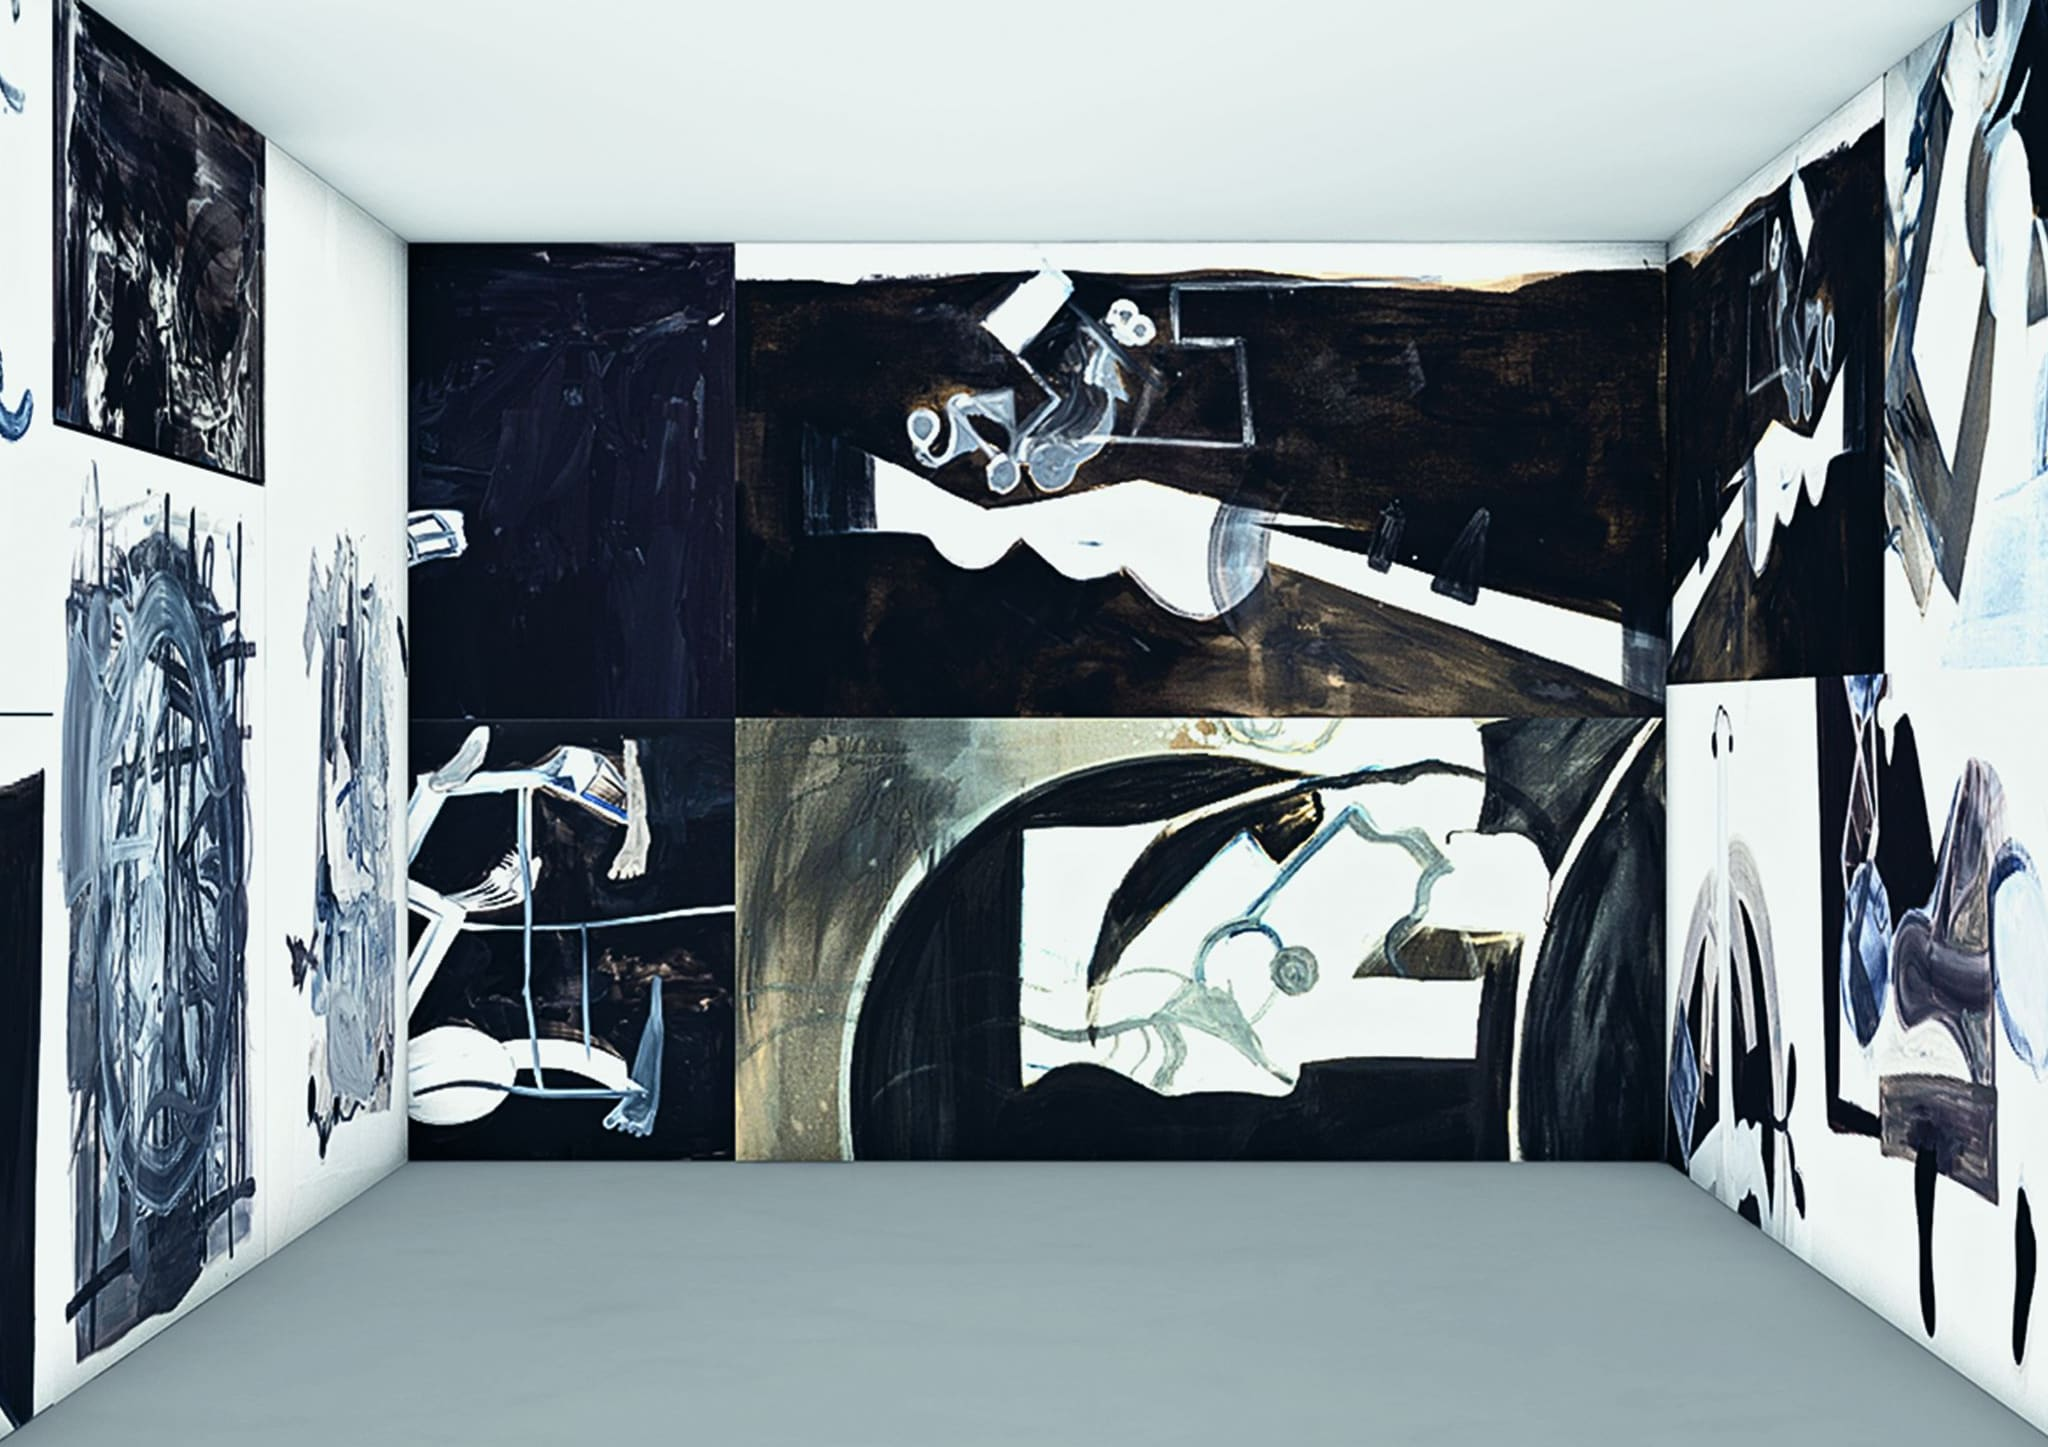 Untitled (Room) by Tobias Pils